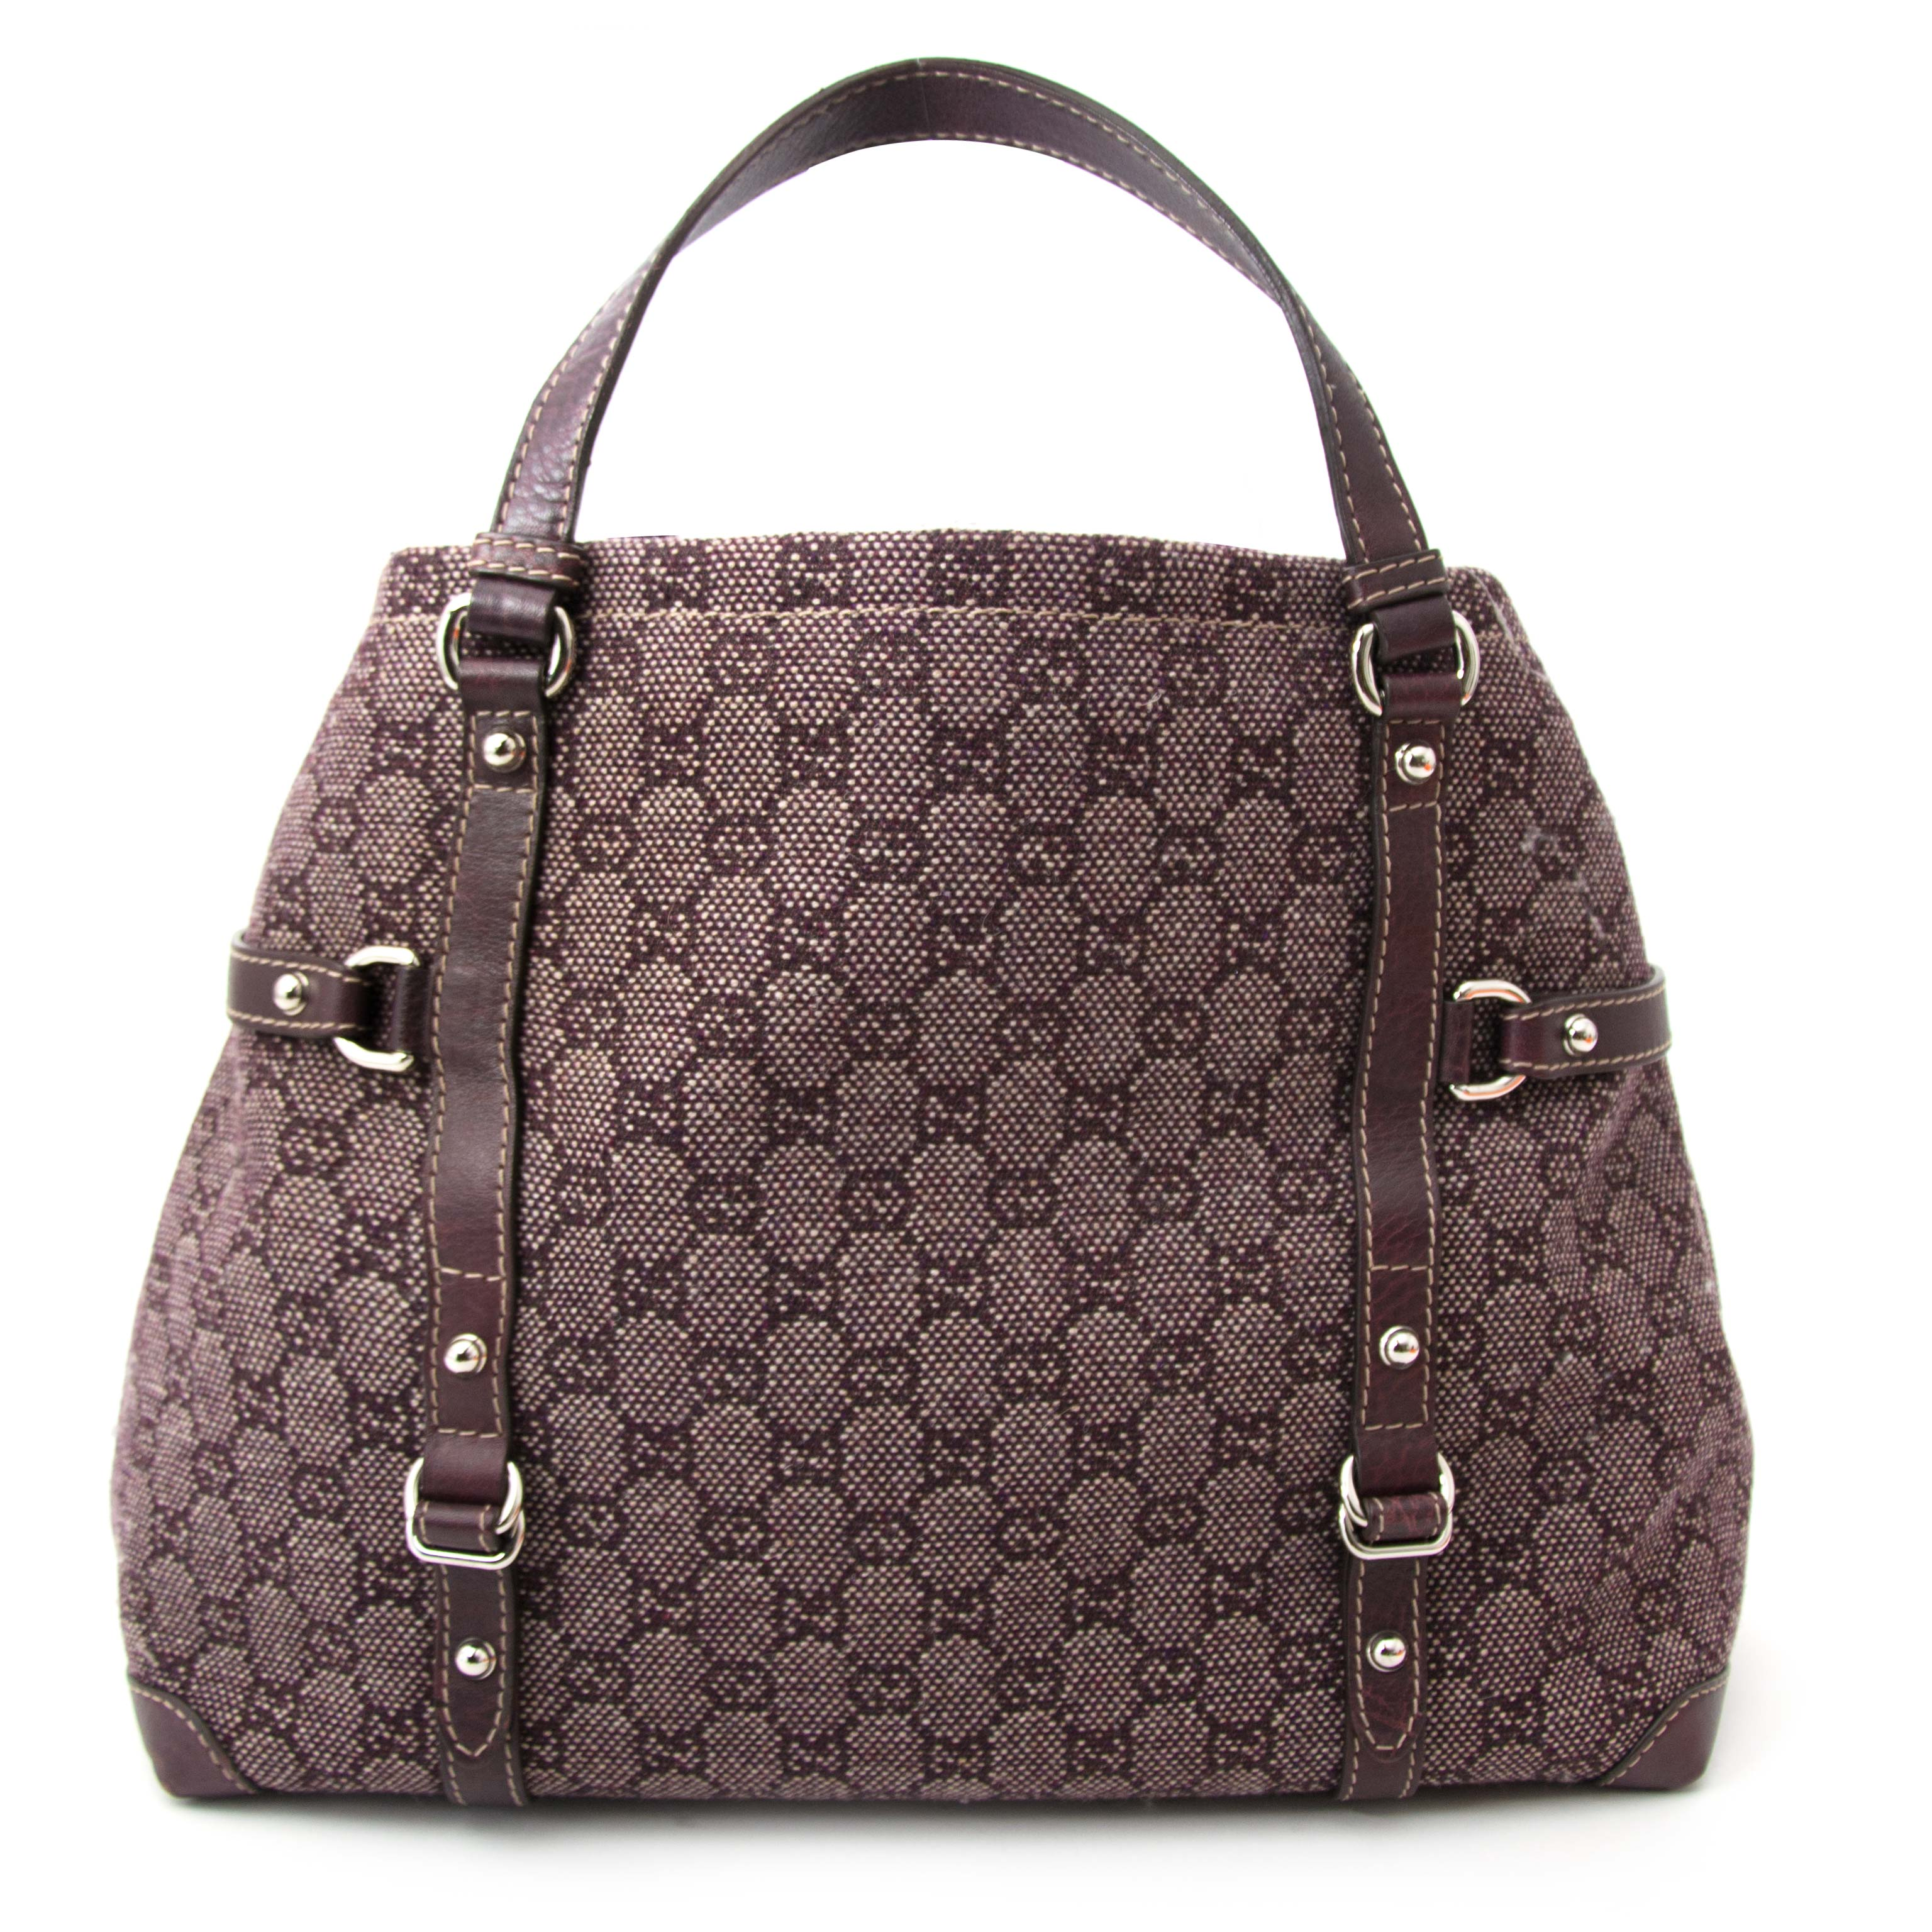 Acheter secur en ligne Gucci Monogram Tweed Monogram Plum Shopper